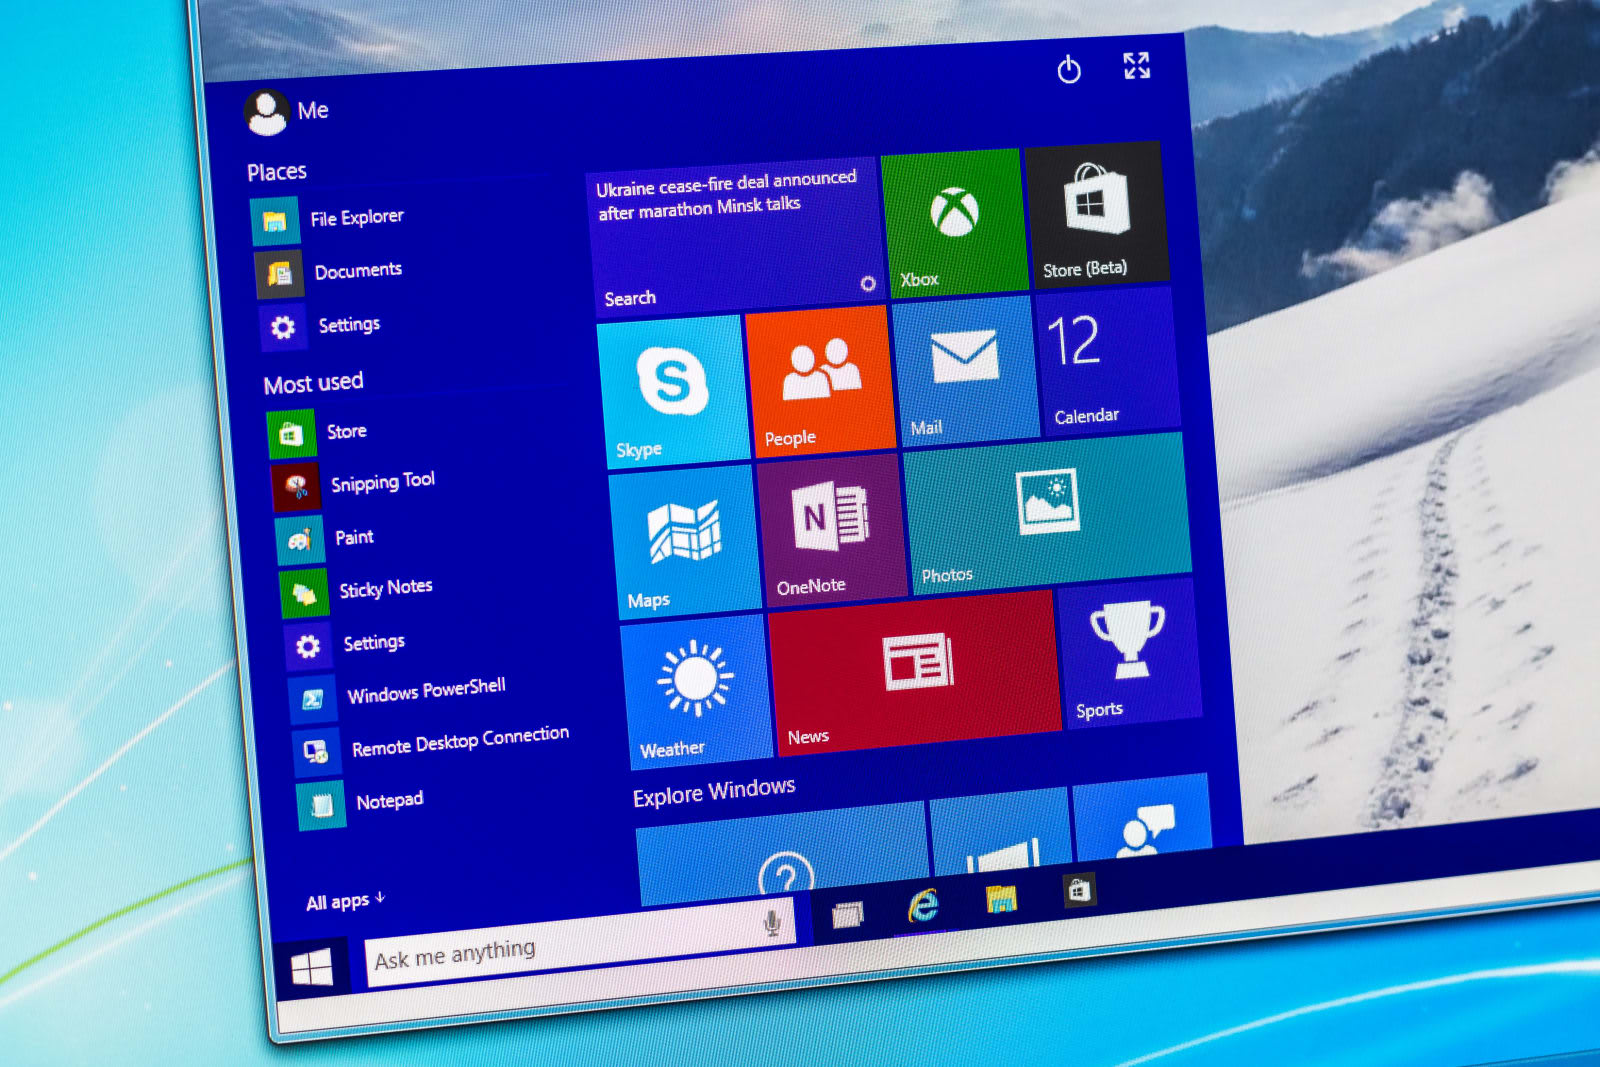 Microsoft's latest Windows 10 update is reportedly wiping